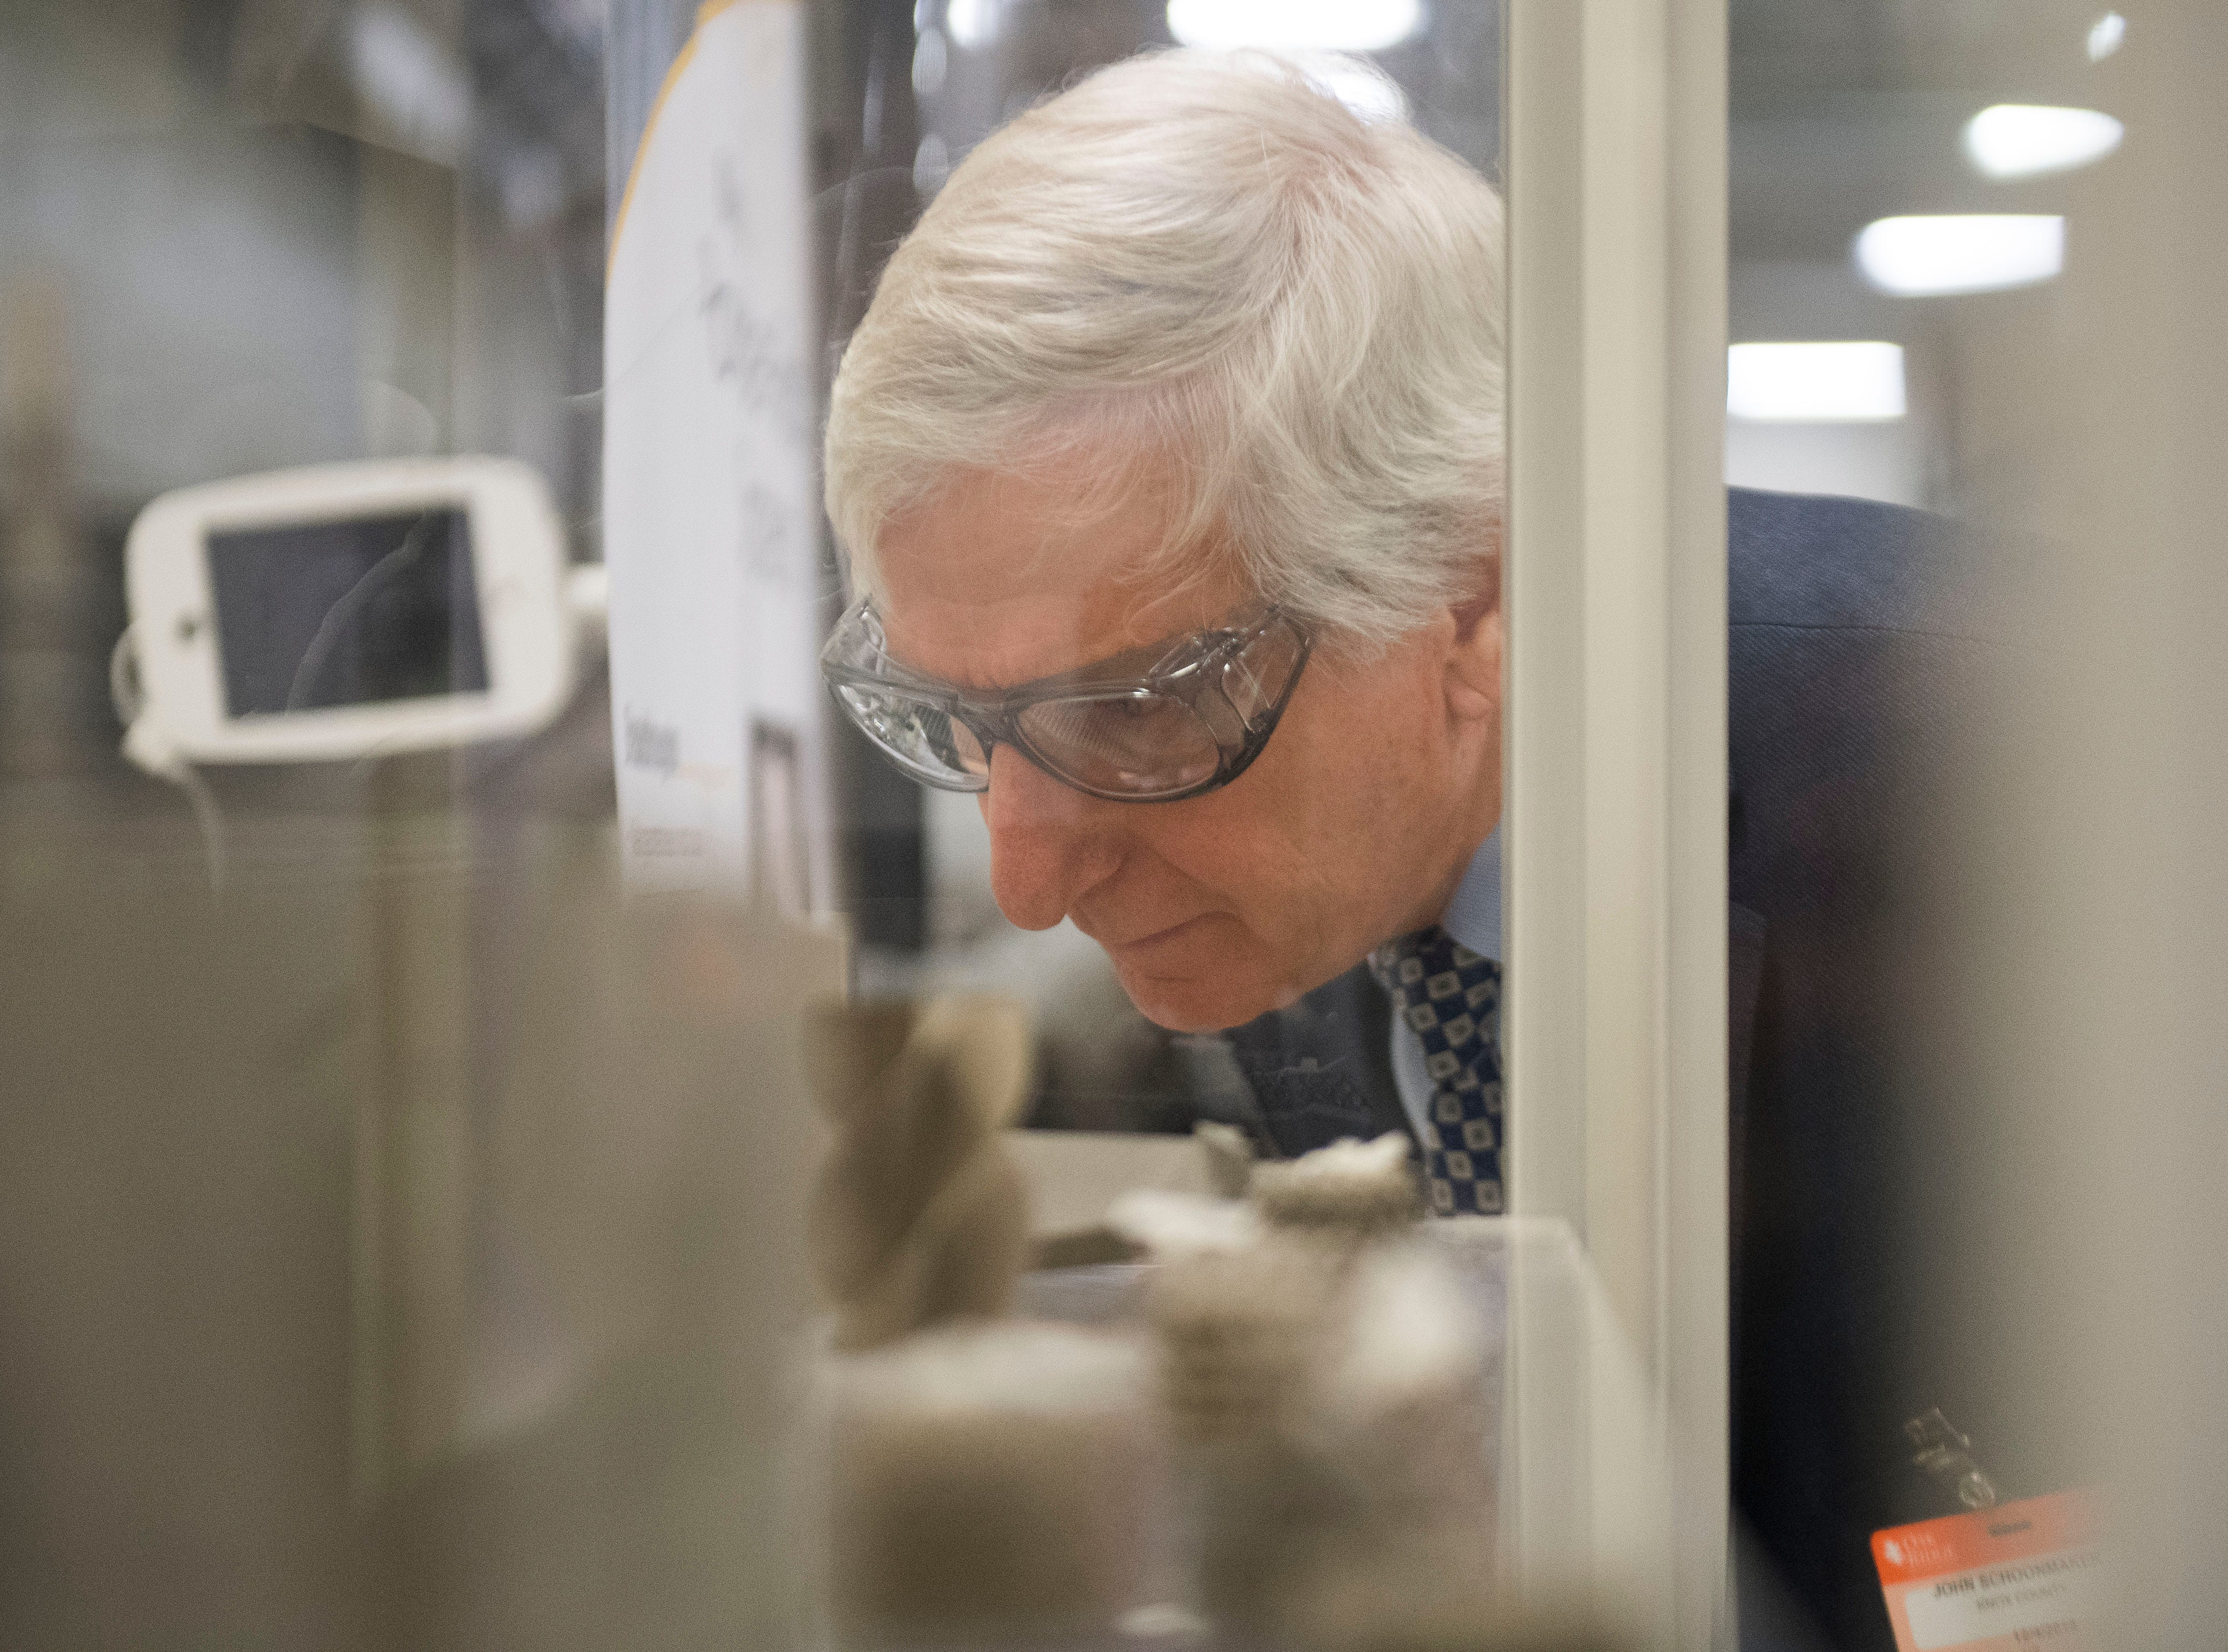 Knox County commisioner John Schoonmaker looks at 3d printed items during a tour of Oak Ridge National Laboratory's Manufacturing Demonstration Facility in Knoxville Tuesday, Dec. 4, 2018. The group got a sense of what is available for the region in terms of advanced manufacturing, and potential workforce initiatives.